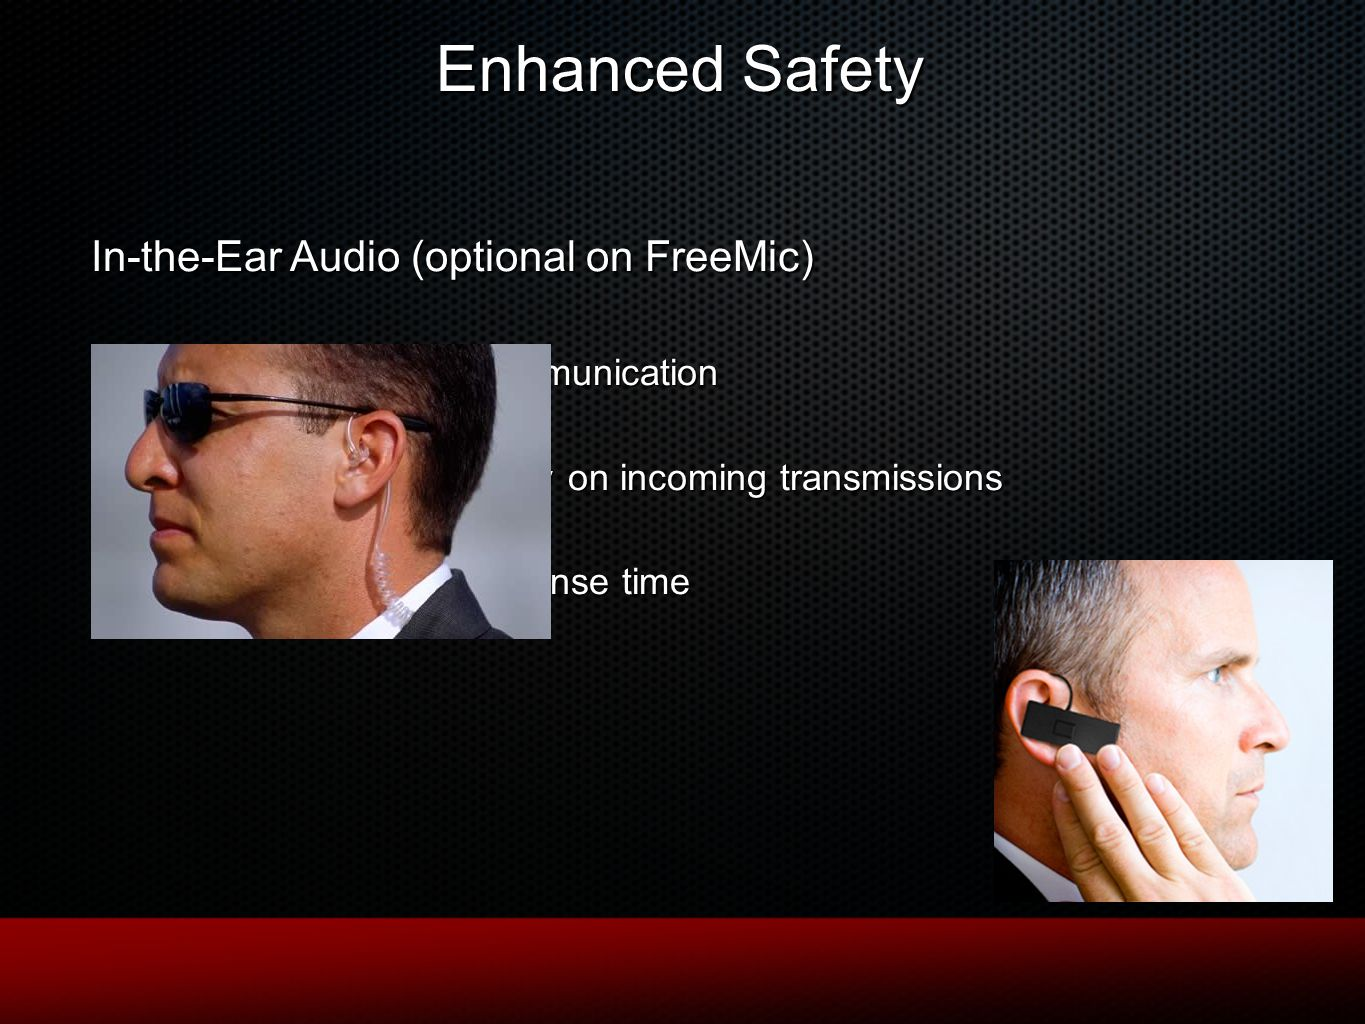 In-the-Ear Audio (optional on FreeMic) No missed communication Absolute privacy on incoming transmissions Increased response time Enhanced Safety